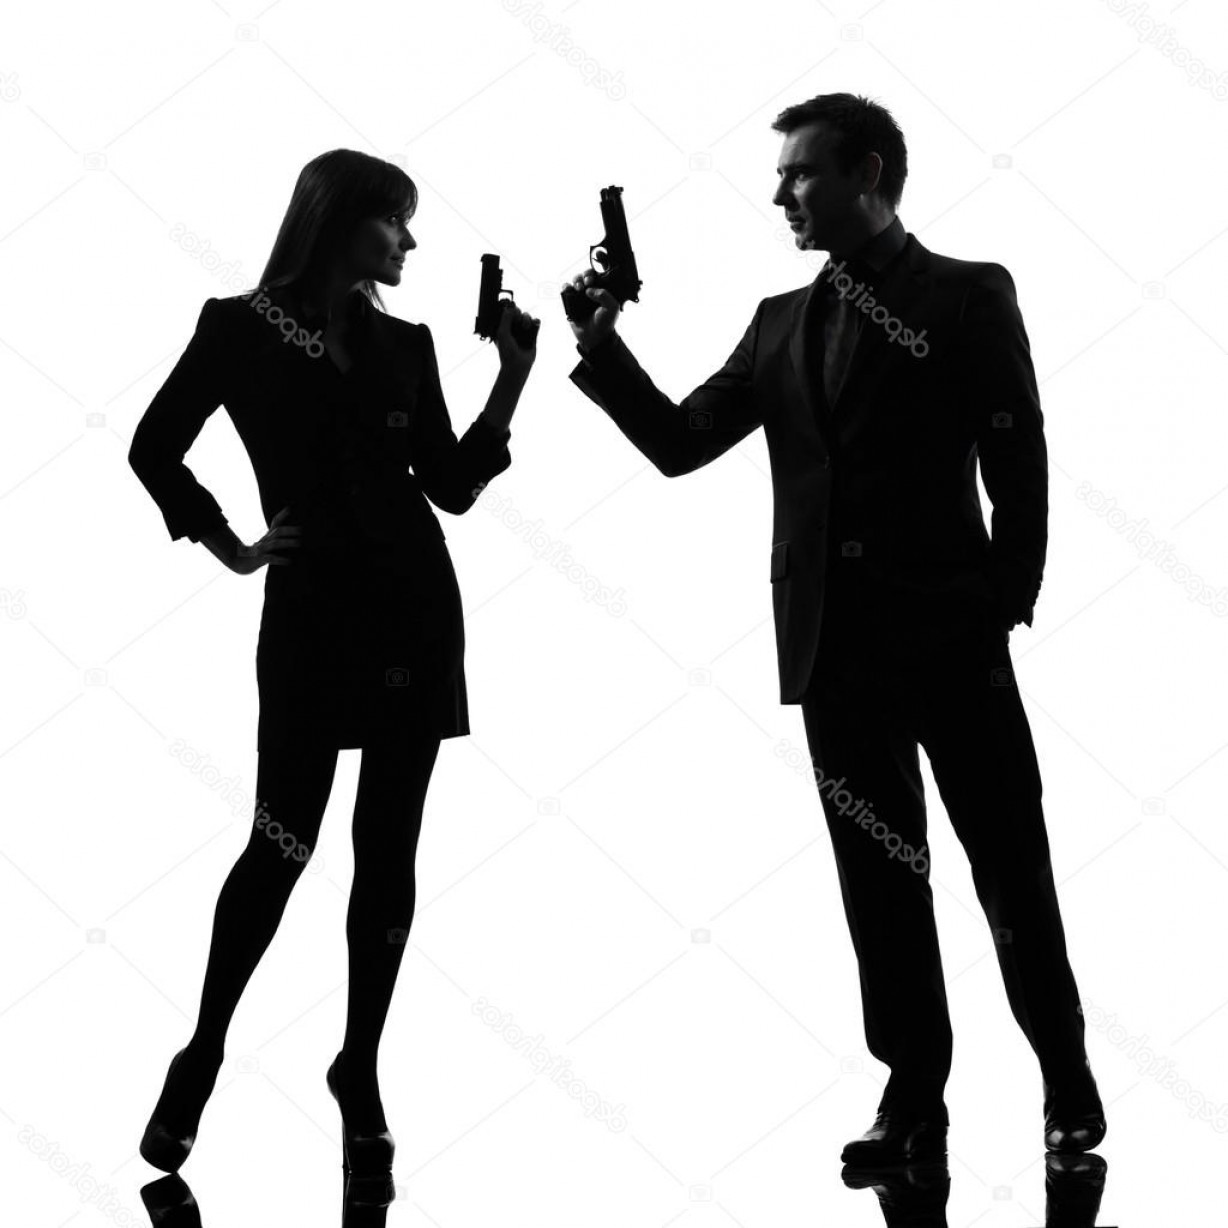 James Bond Silhouette Vector: Stock Photo Couple Woman Man Detective Secret